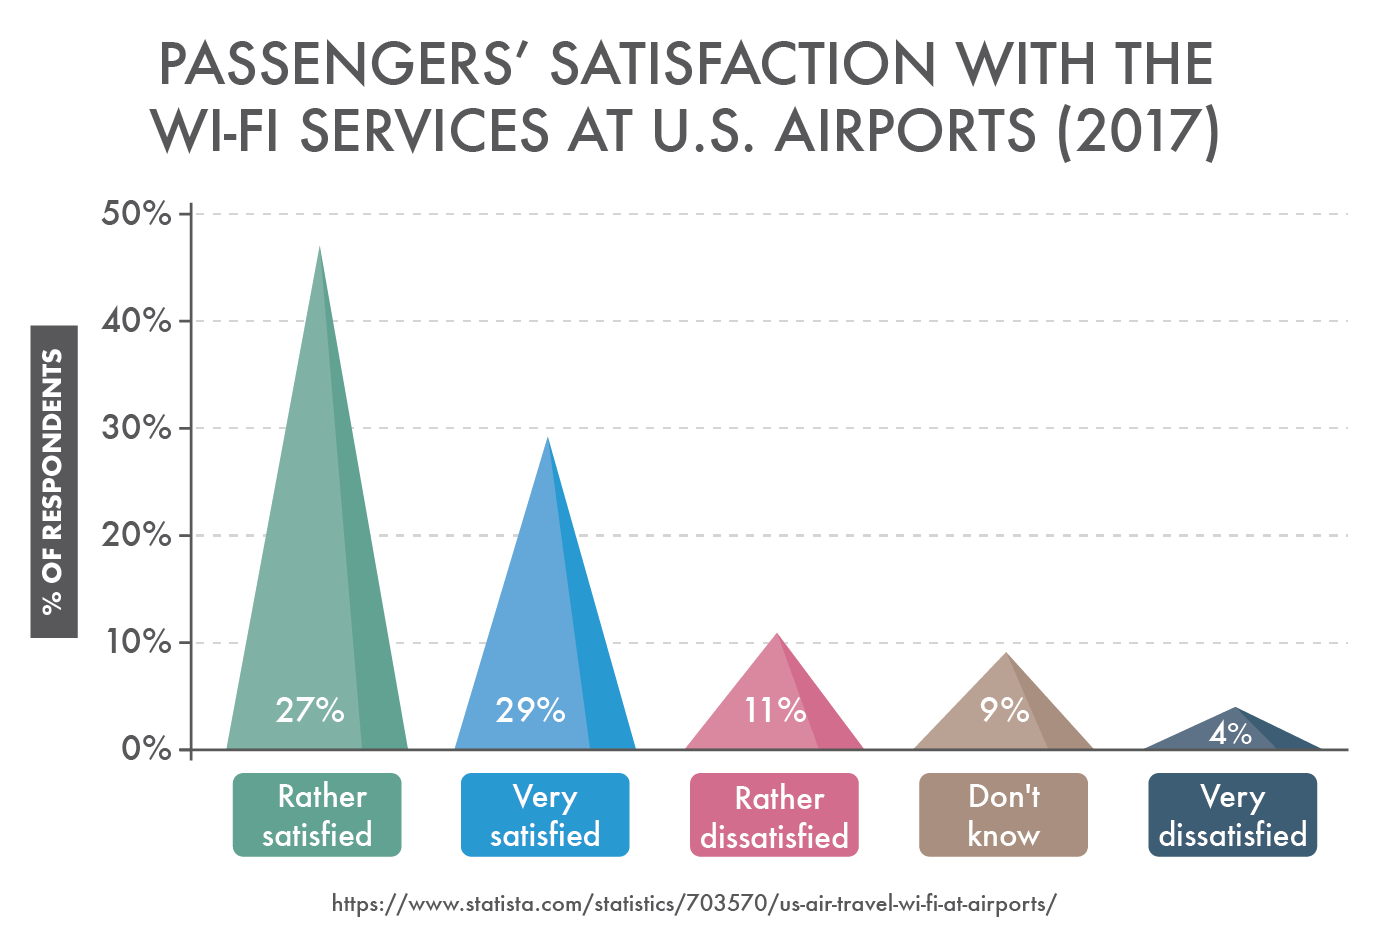 Passengers' Satisfaction With The Wi-Fi Services at U.S. Airports (2017)